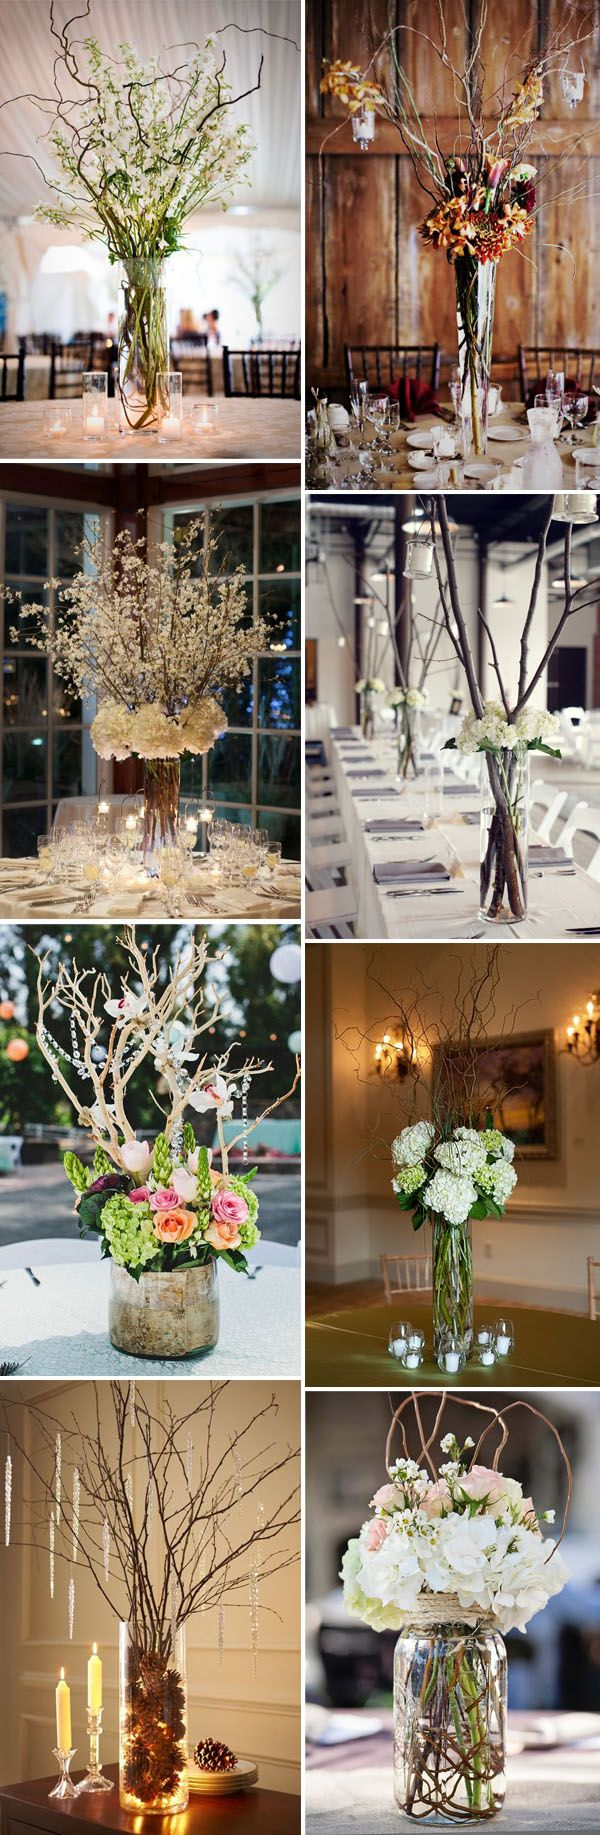 28 Creative & Budget friendly DIY Wedding Decoration Ideas